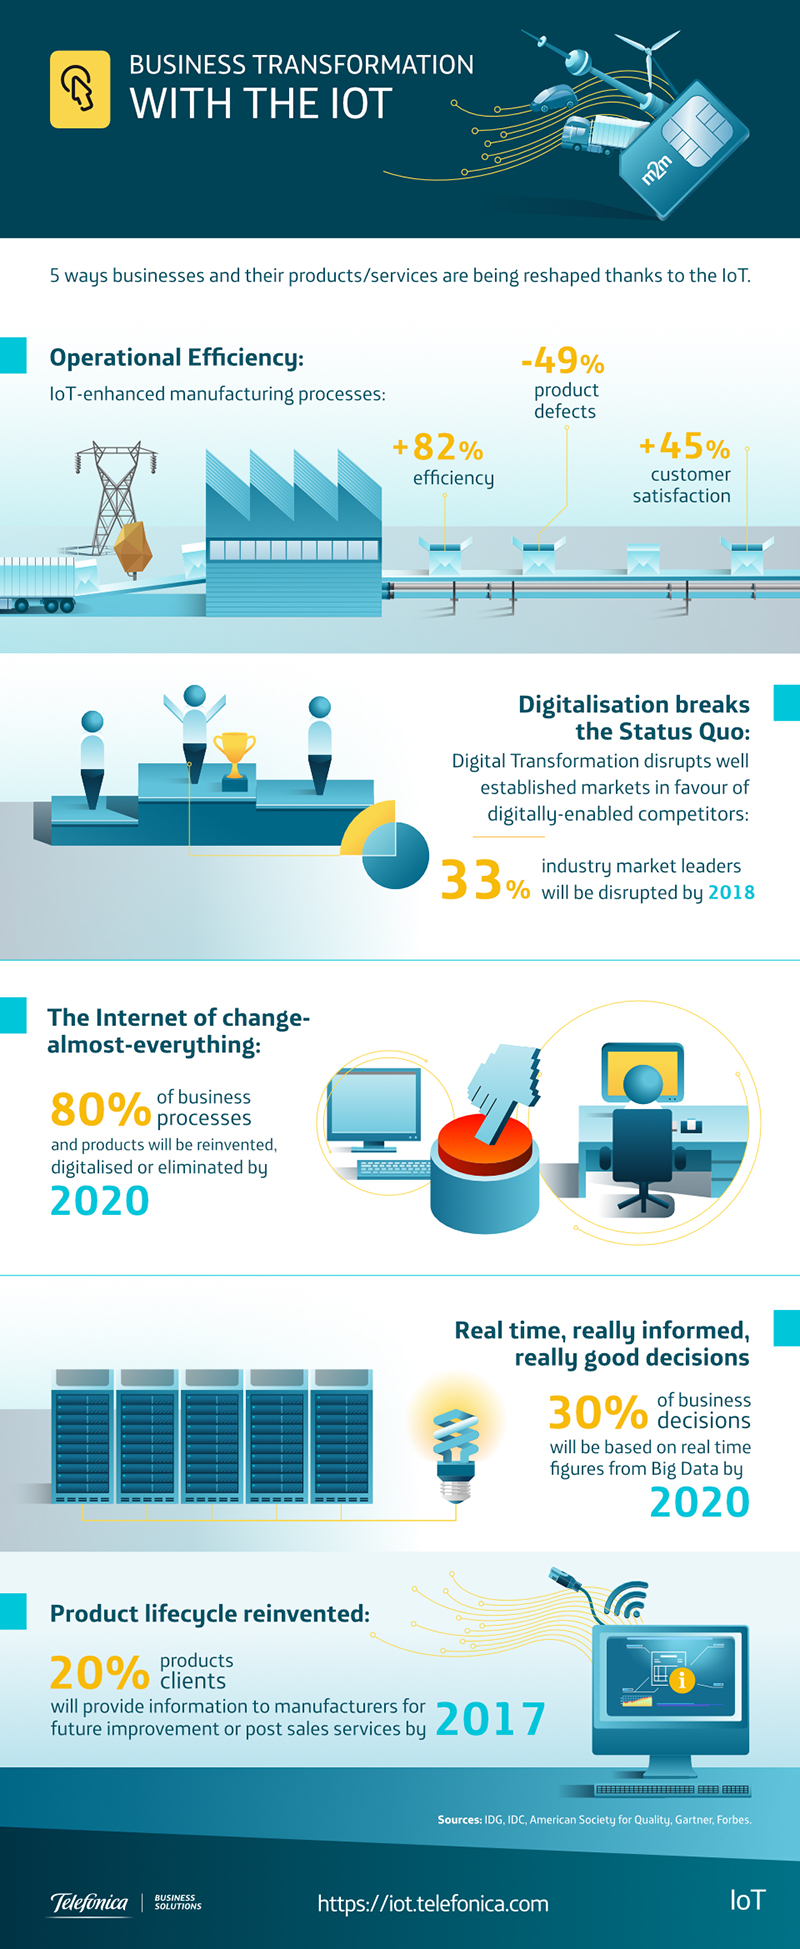 Elaboramos la infografía Business Transformation with the IOT para Telefónica M2M